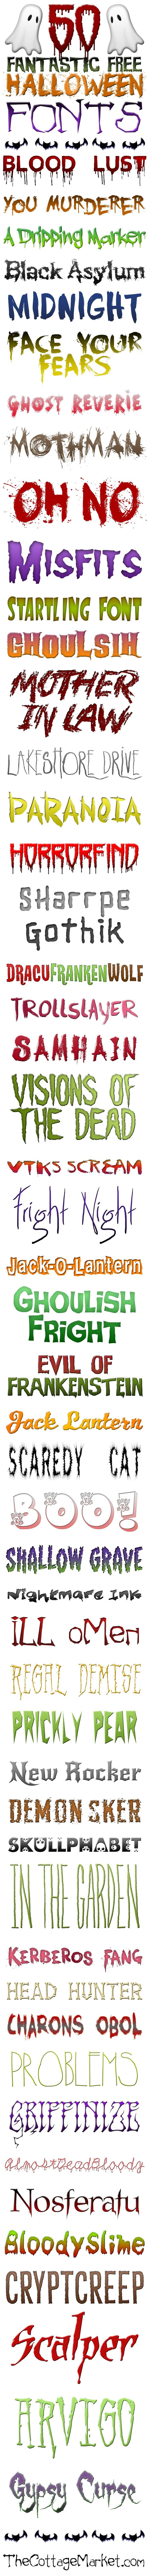 50 Fantastic Free Halloween Fonts - The Cottage Market #haloweenfonts #halloween2018 #freefonts #freetypography